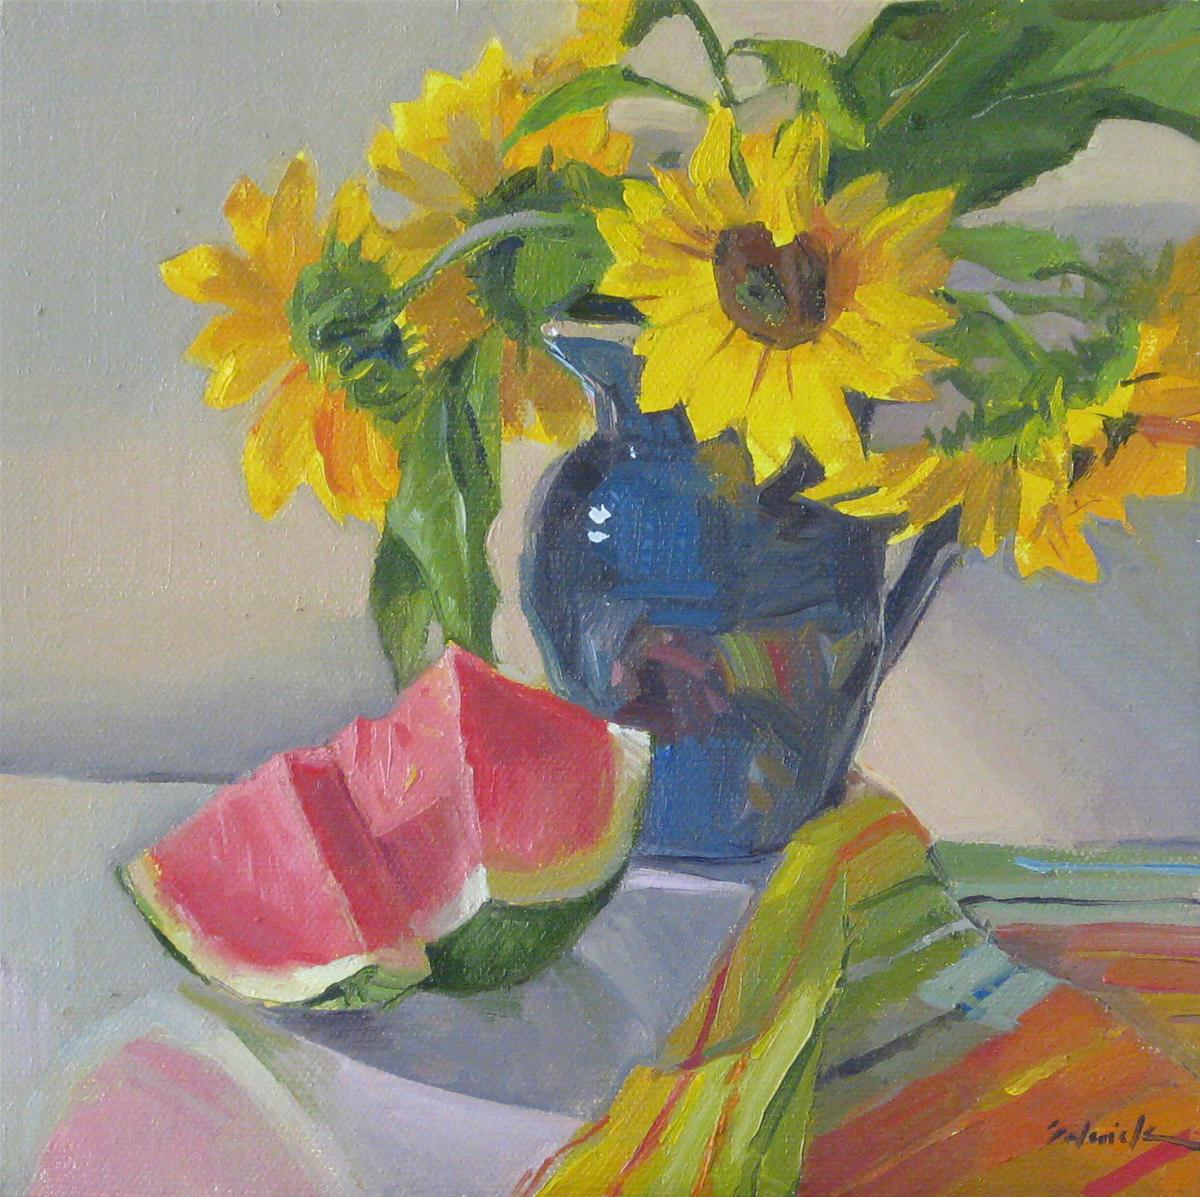 """Sunflowers and Watermelon"" original fine art by Sarah Sedwick"